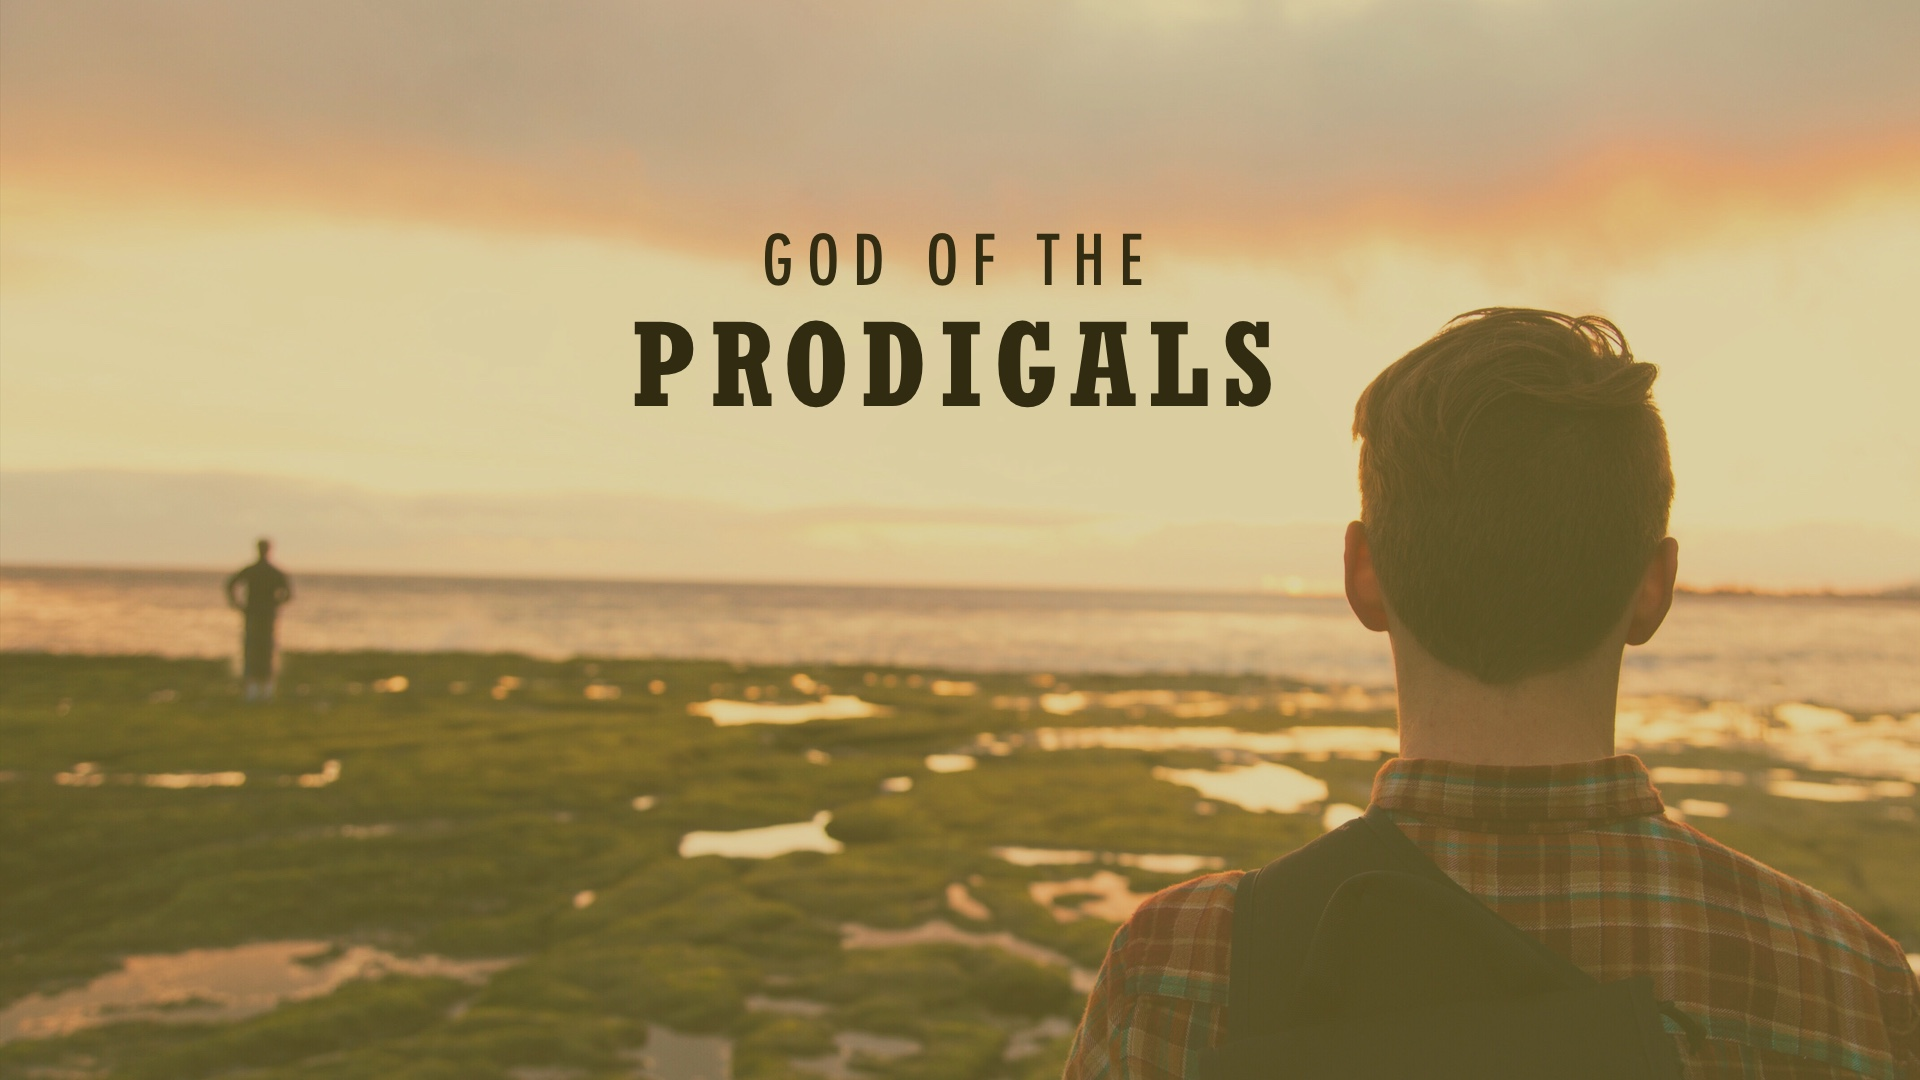 God of the Prodigals Title